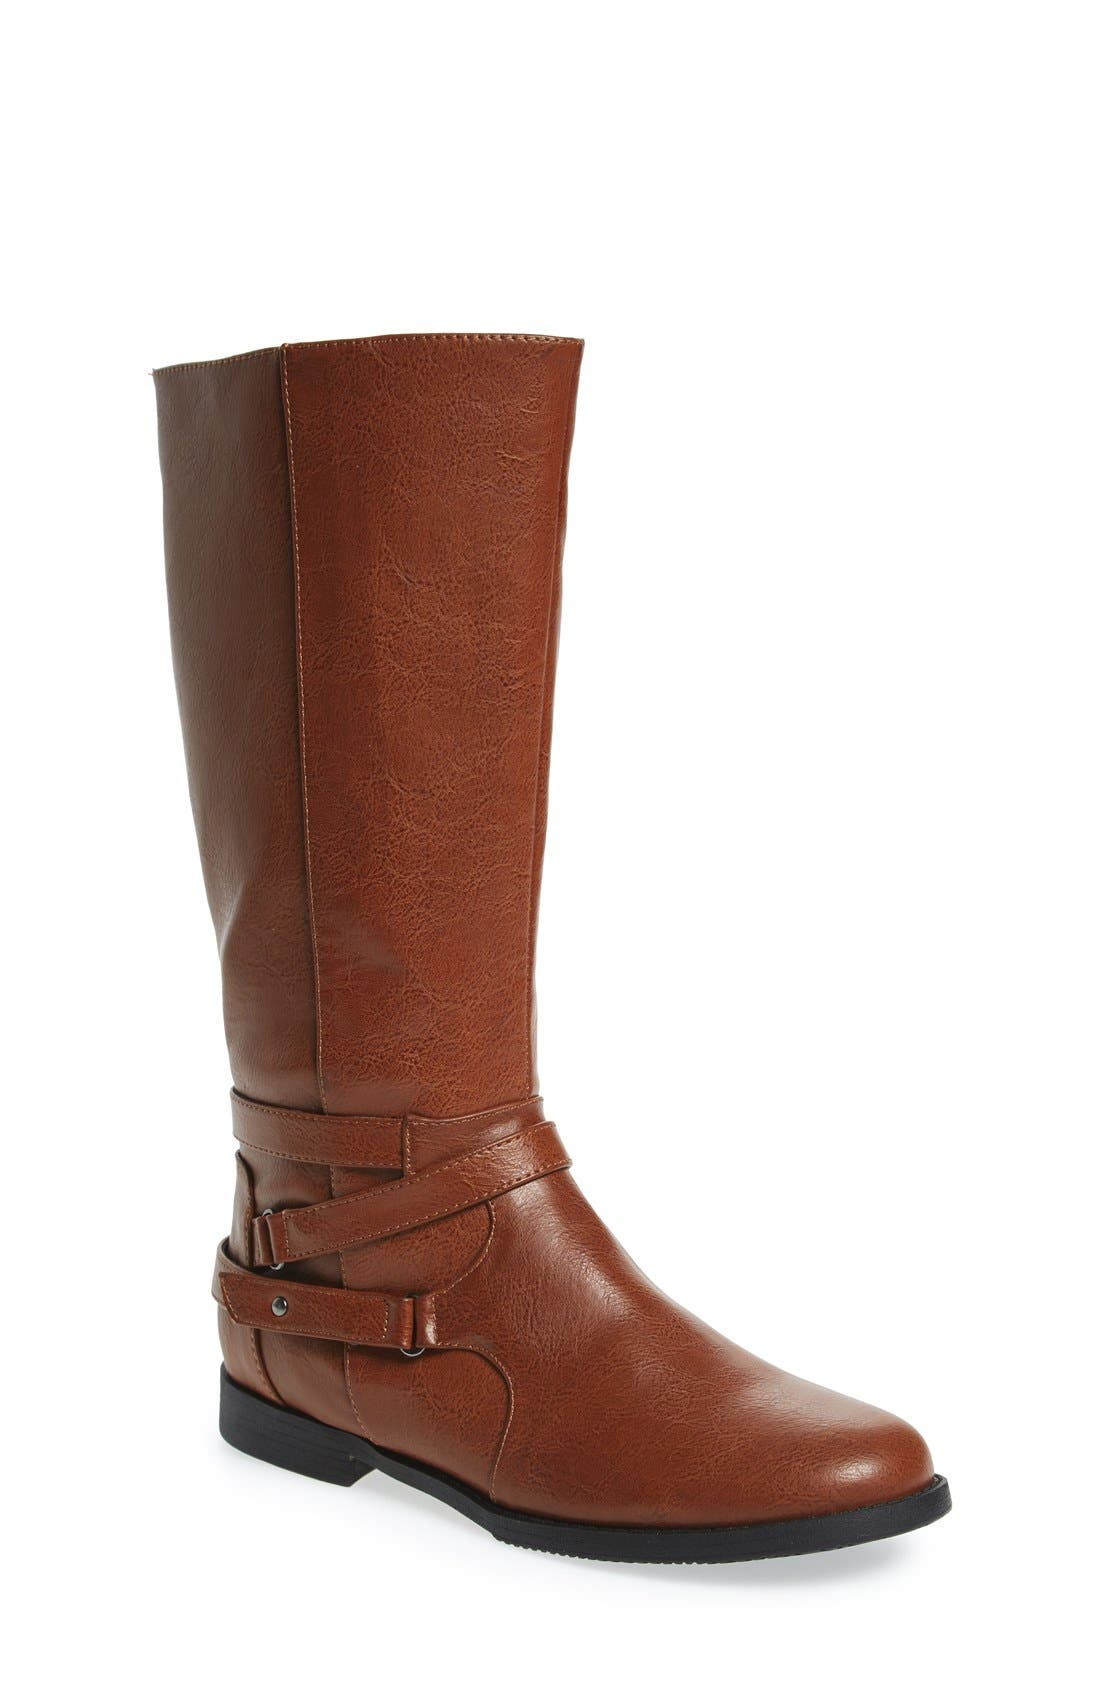 KENNETH COLE NEW YORK 'Kennedy' Riding Boot